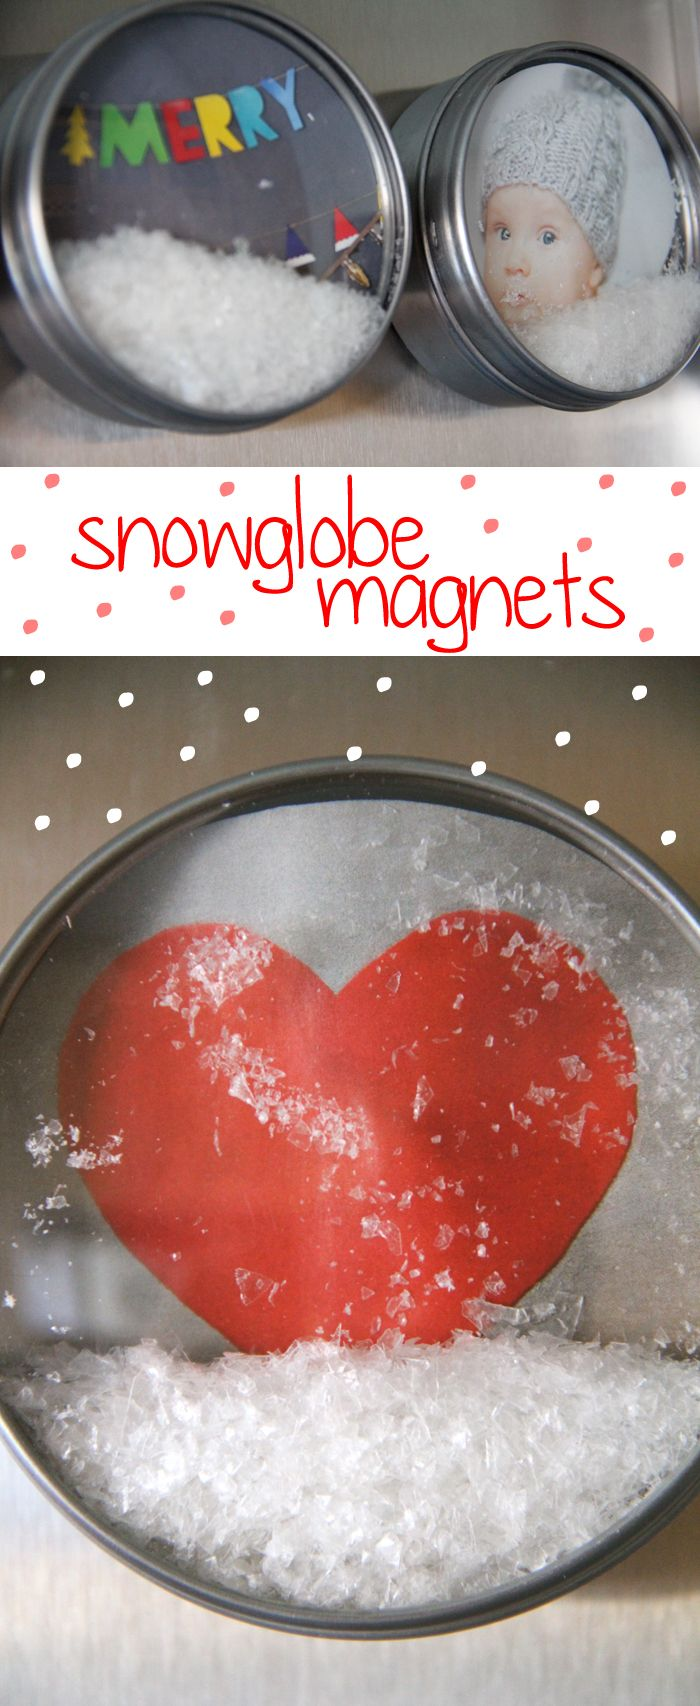 Snowglobe magnets made of magnetic spice tins from Ikea and pictures cut out of catalogs.